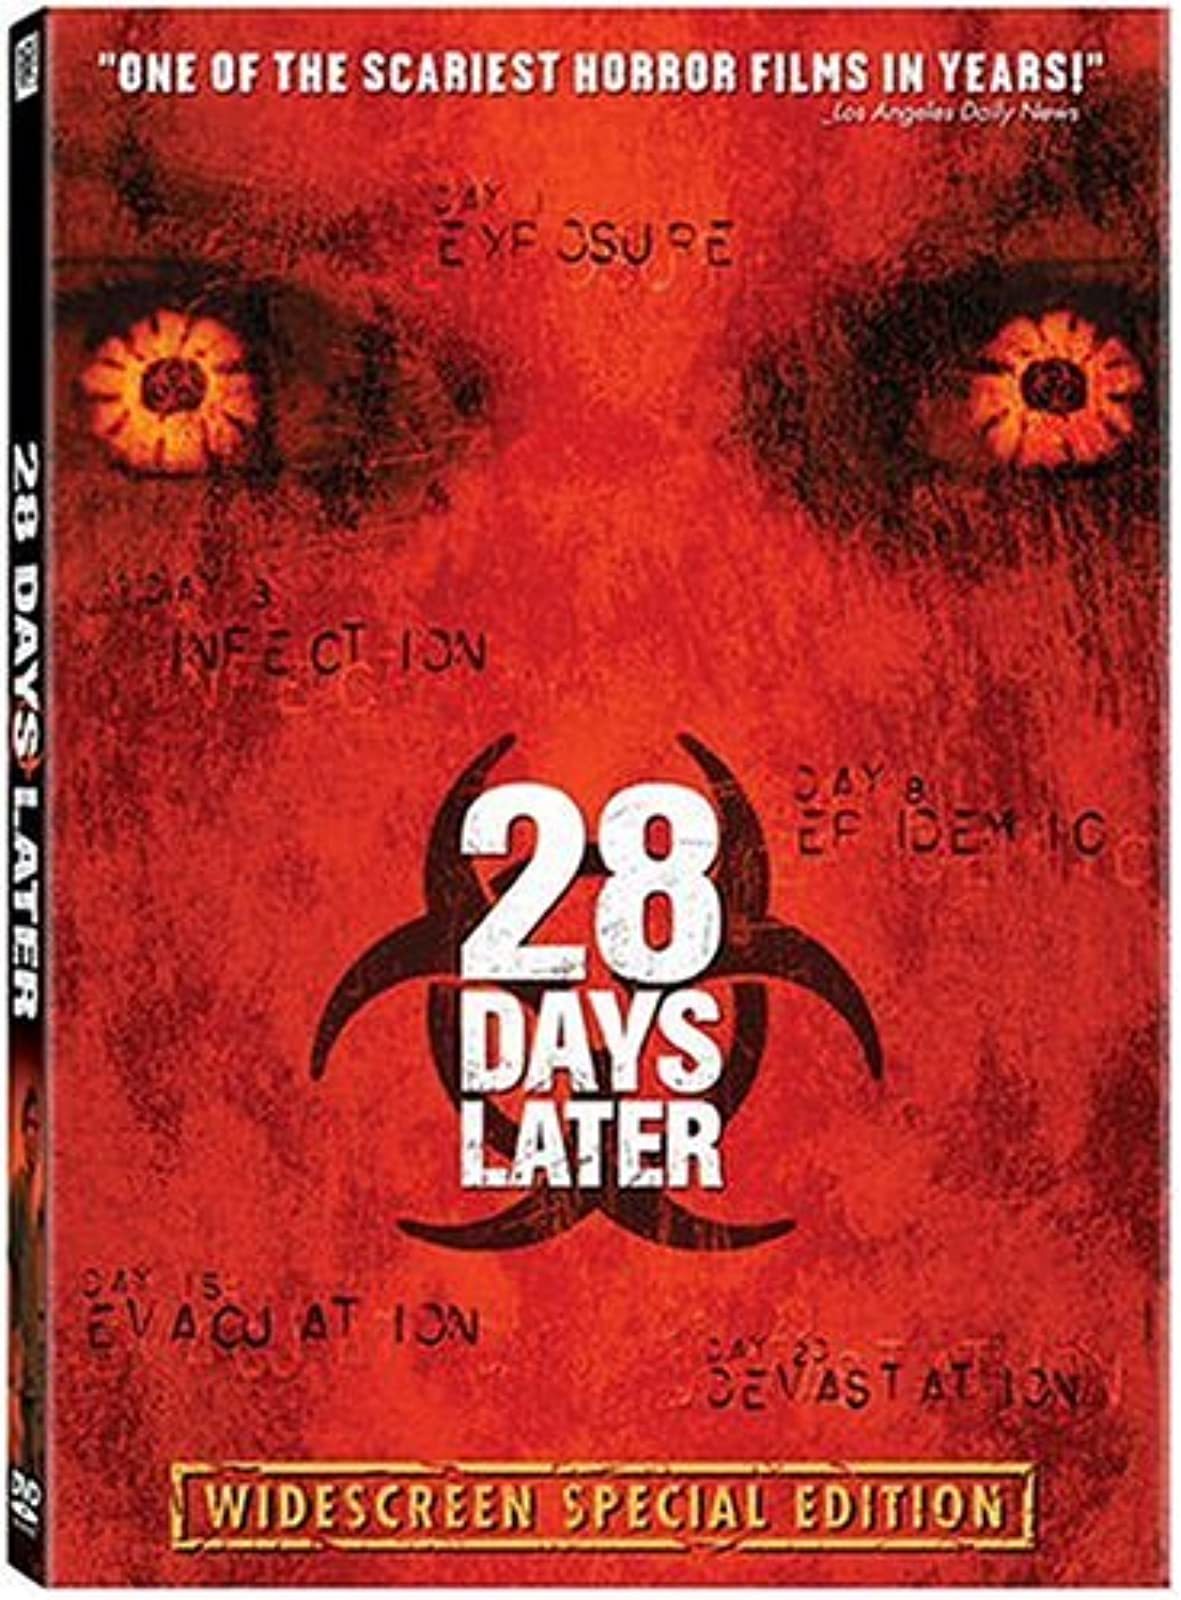 28 Days Later Widescreen Special Edition On DVD with Ray Panthaki